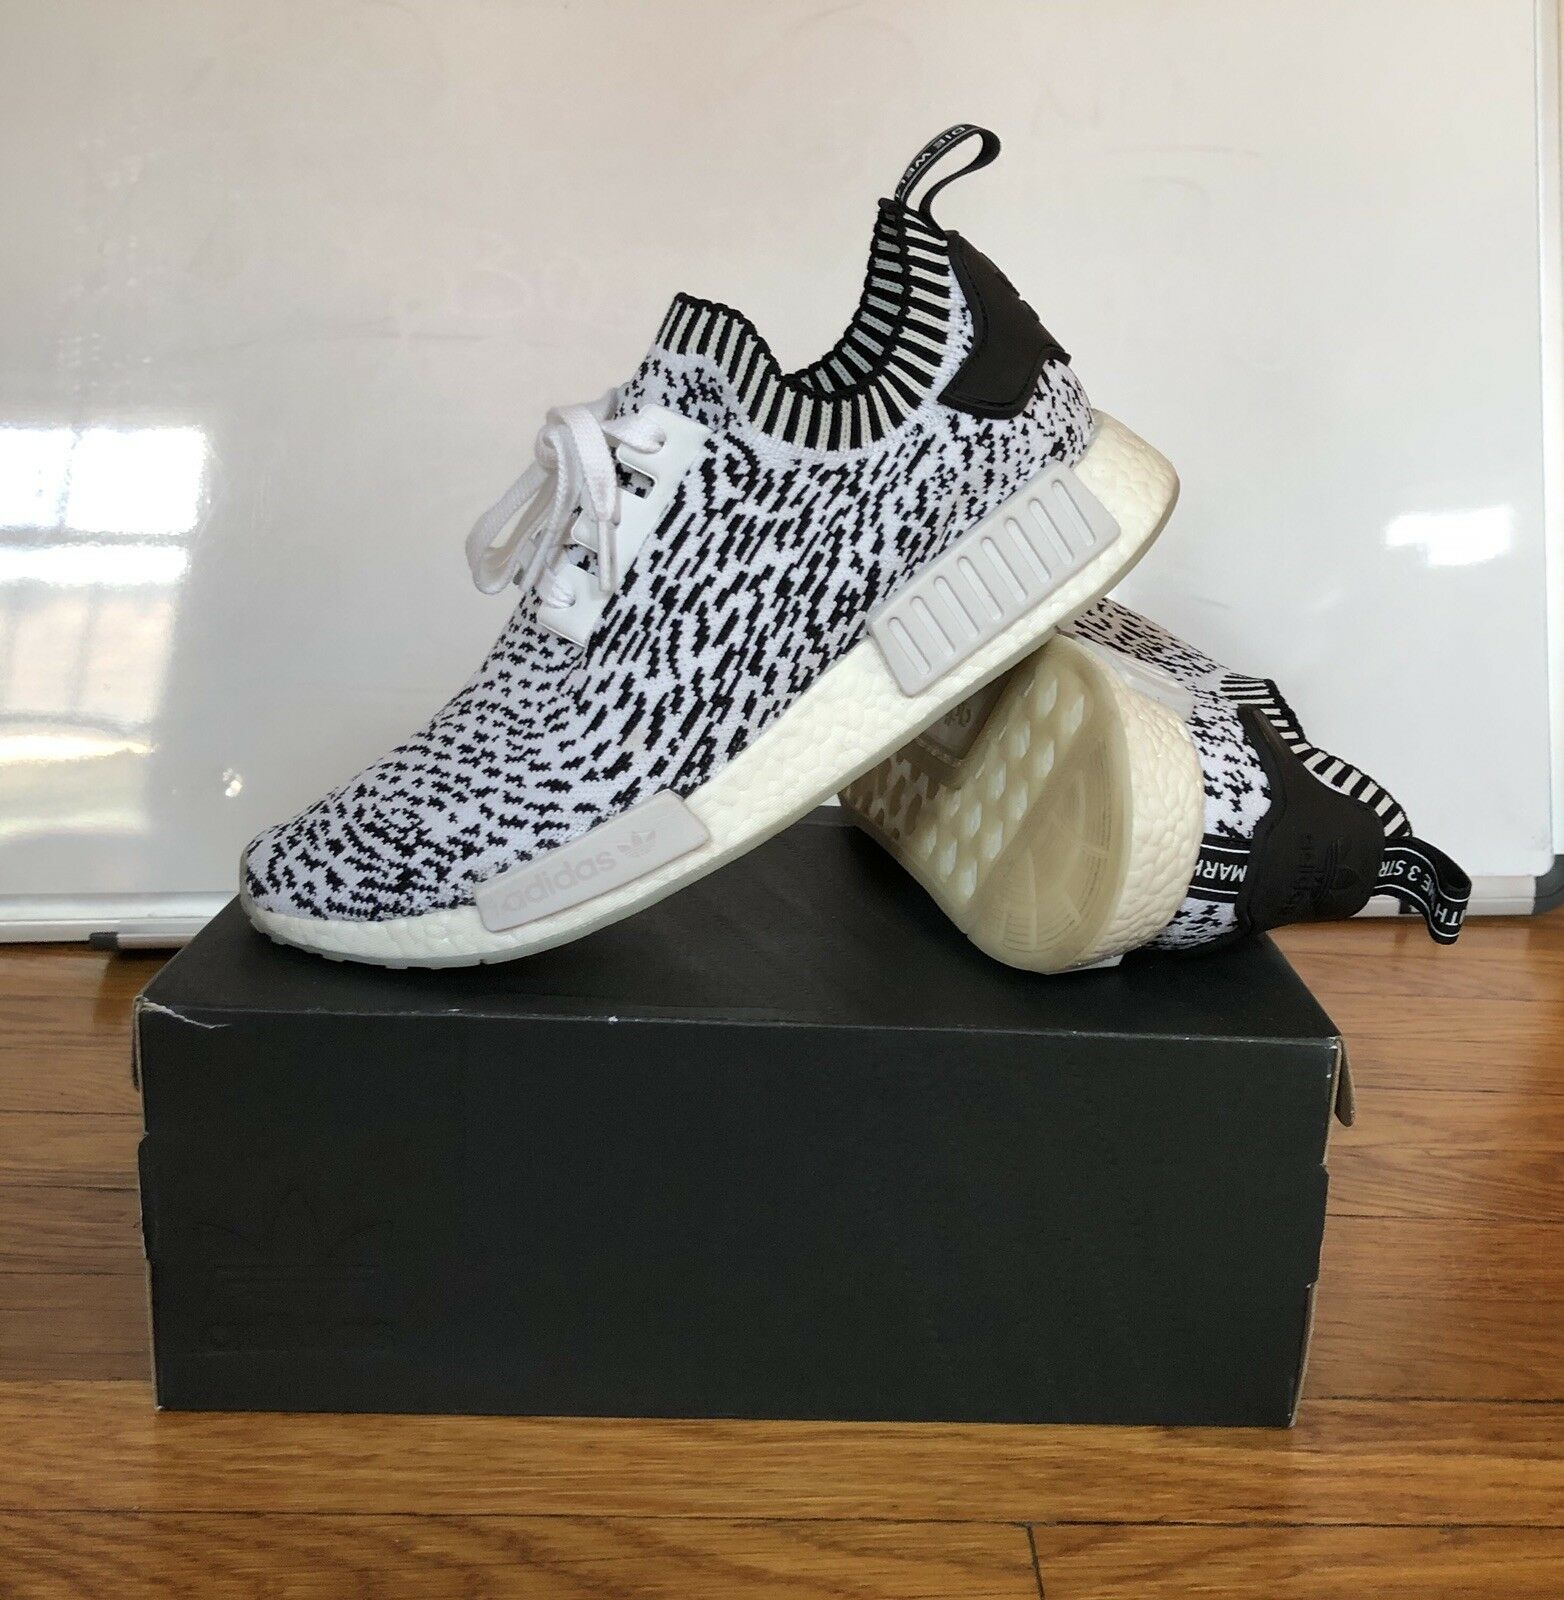 Adidas Originals NMD R1 Trefoil Sashiko Pack White With Black Striped 11.5  Trefoil R1 Yeezy ee4cb0 cafc31191